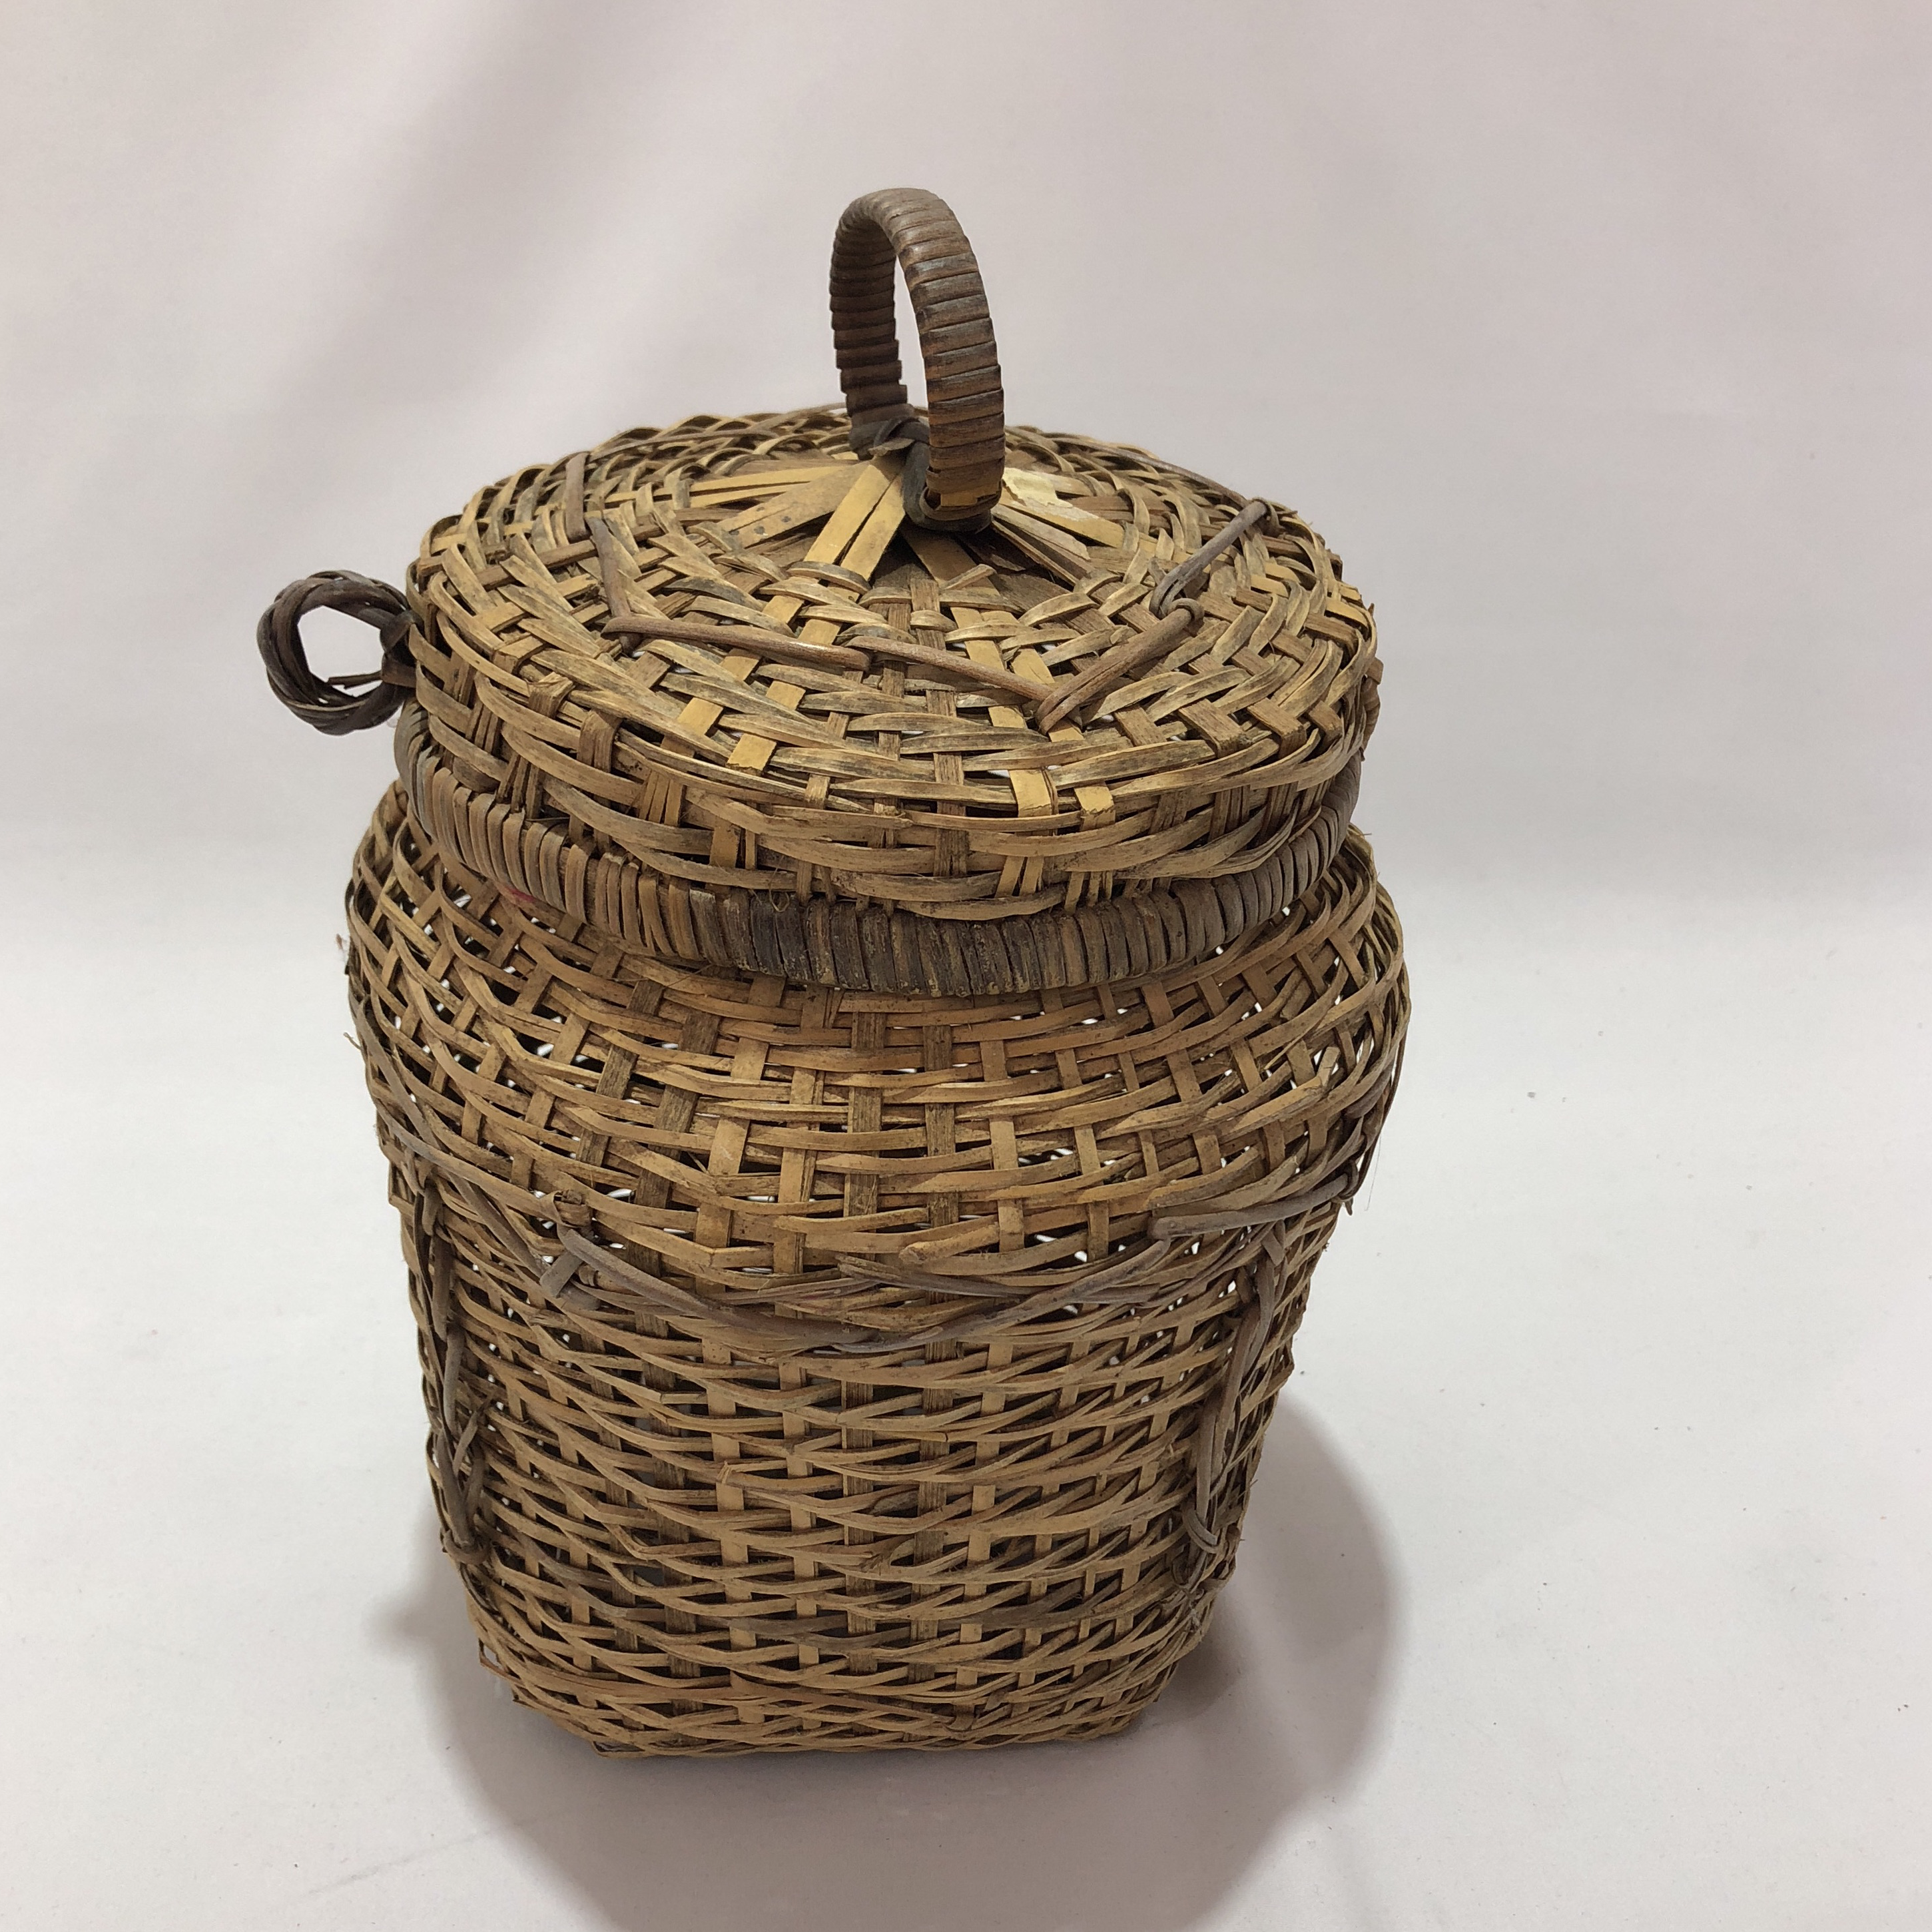 Antique African Basket With Attached Lid - Image 4 of 8 & Antique African Basket With Attached Lid | Chairish